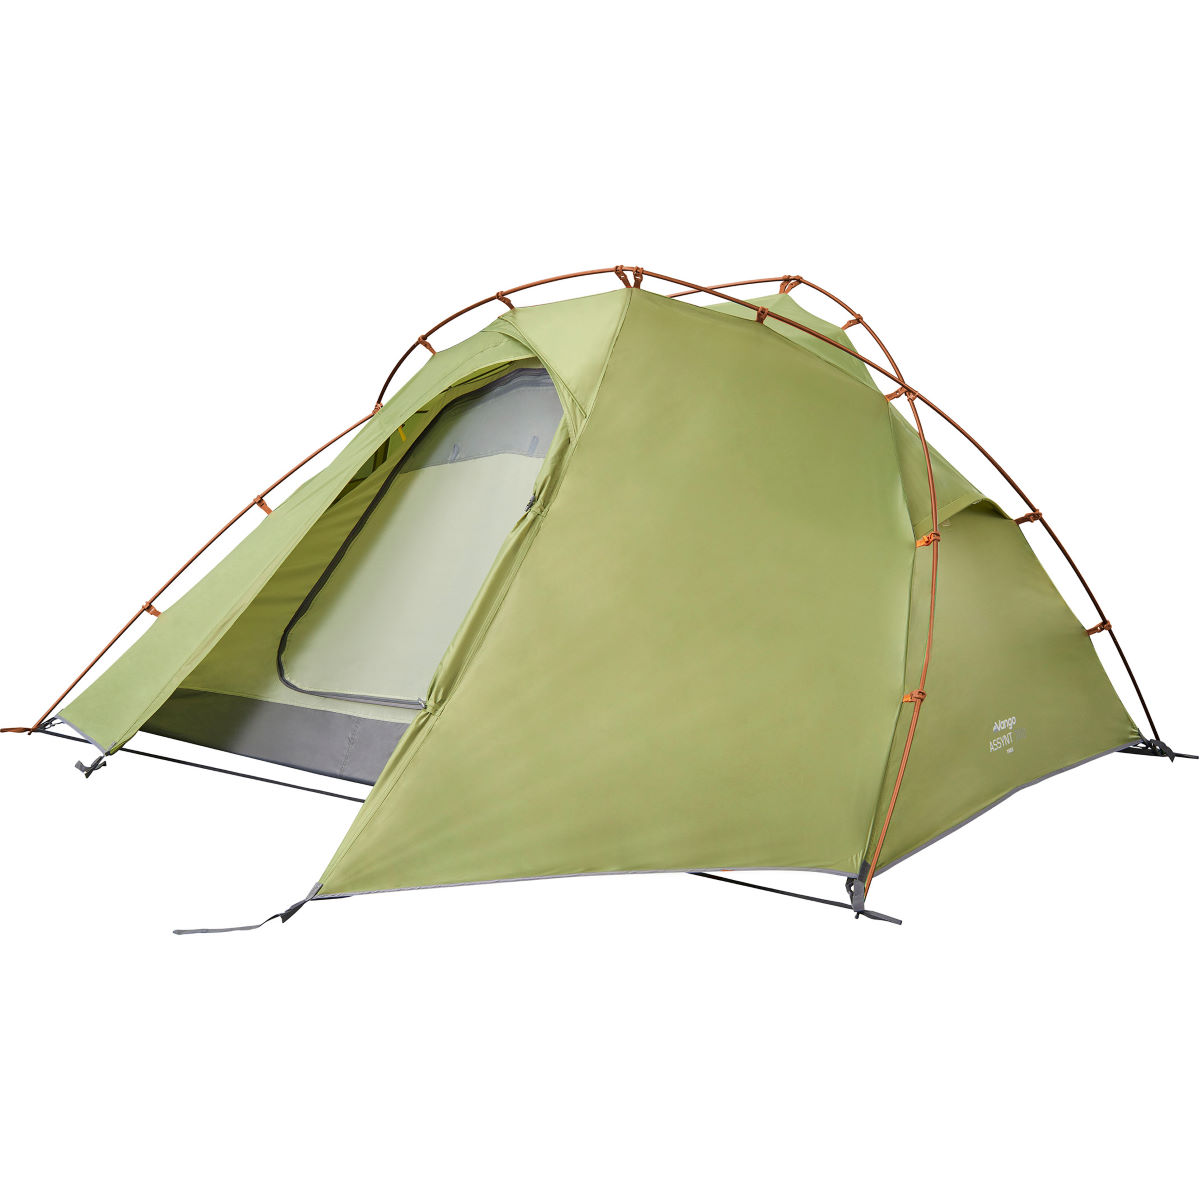 Vango Vango Assynt 200 Two Person Tent   Tents